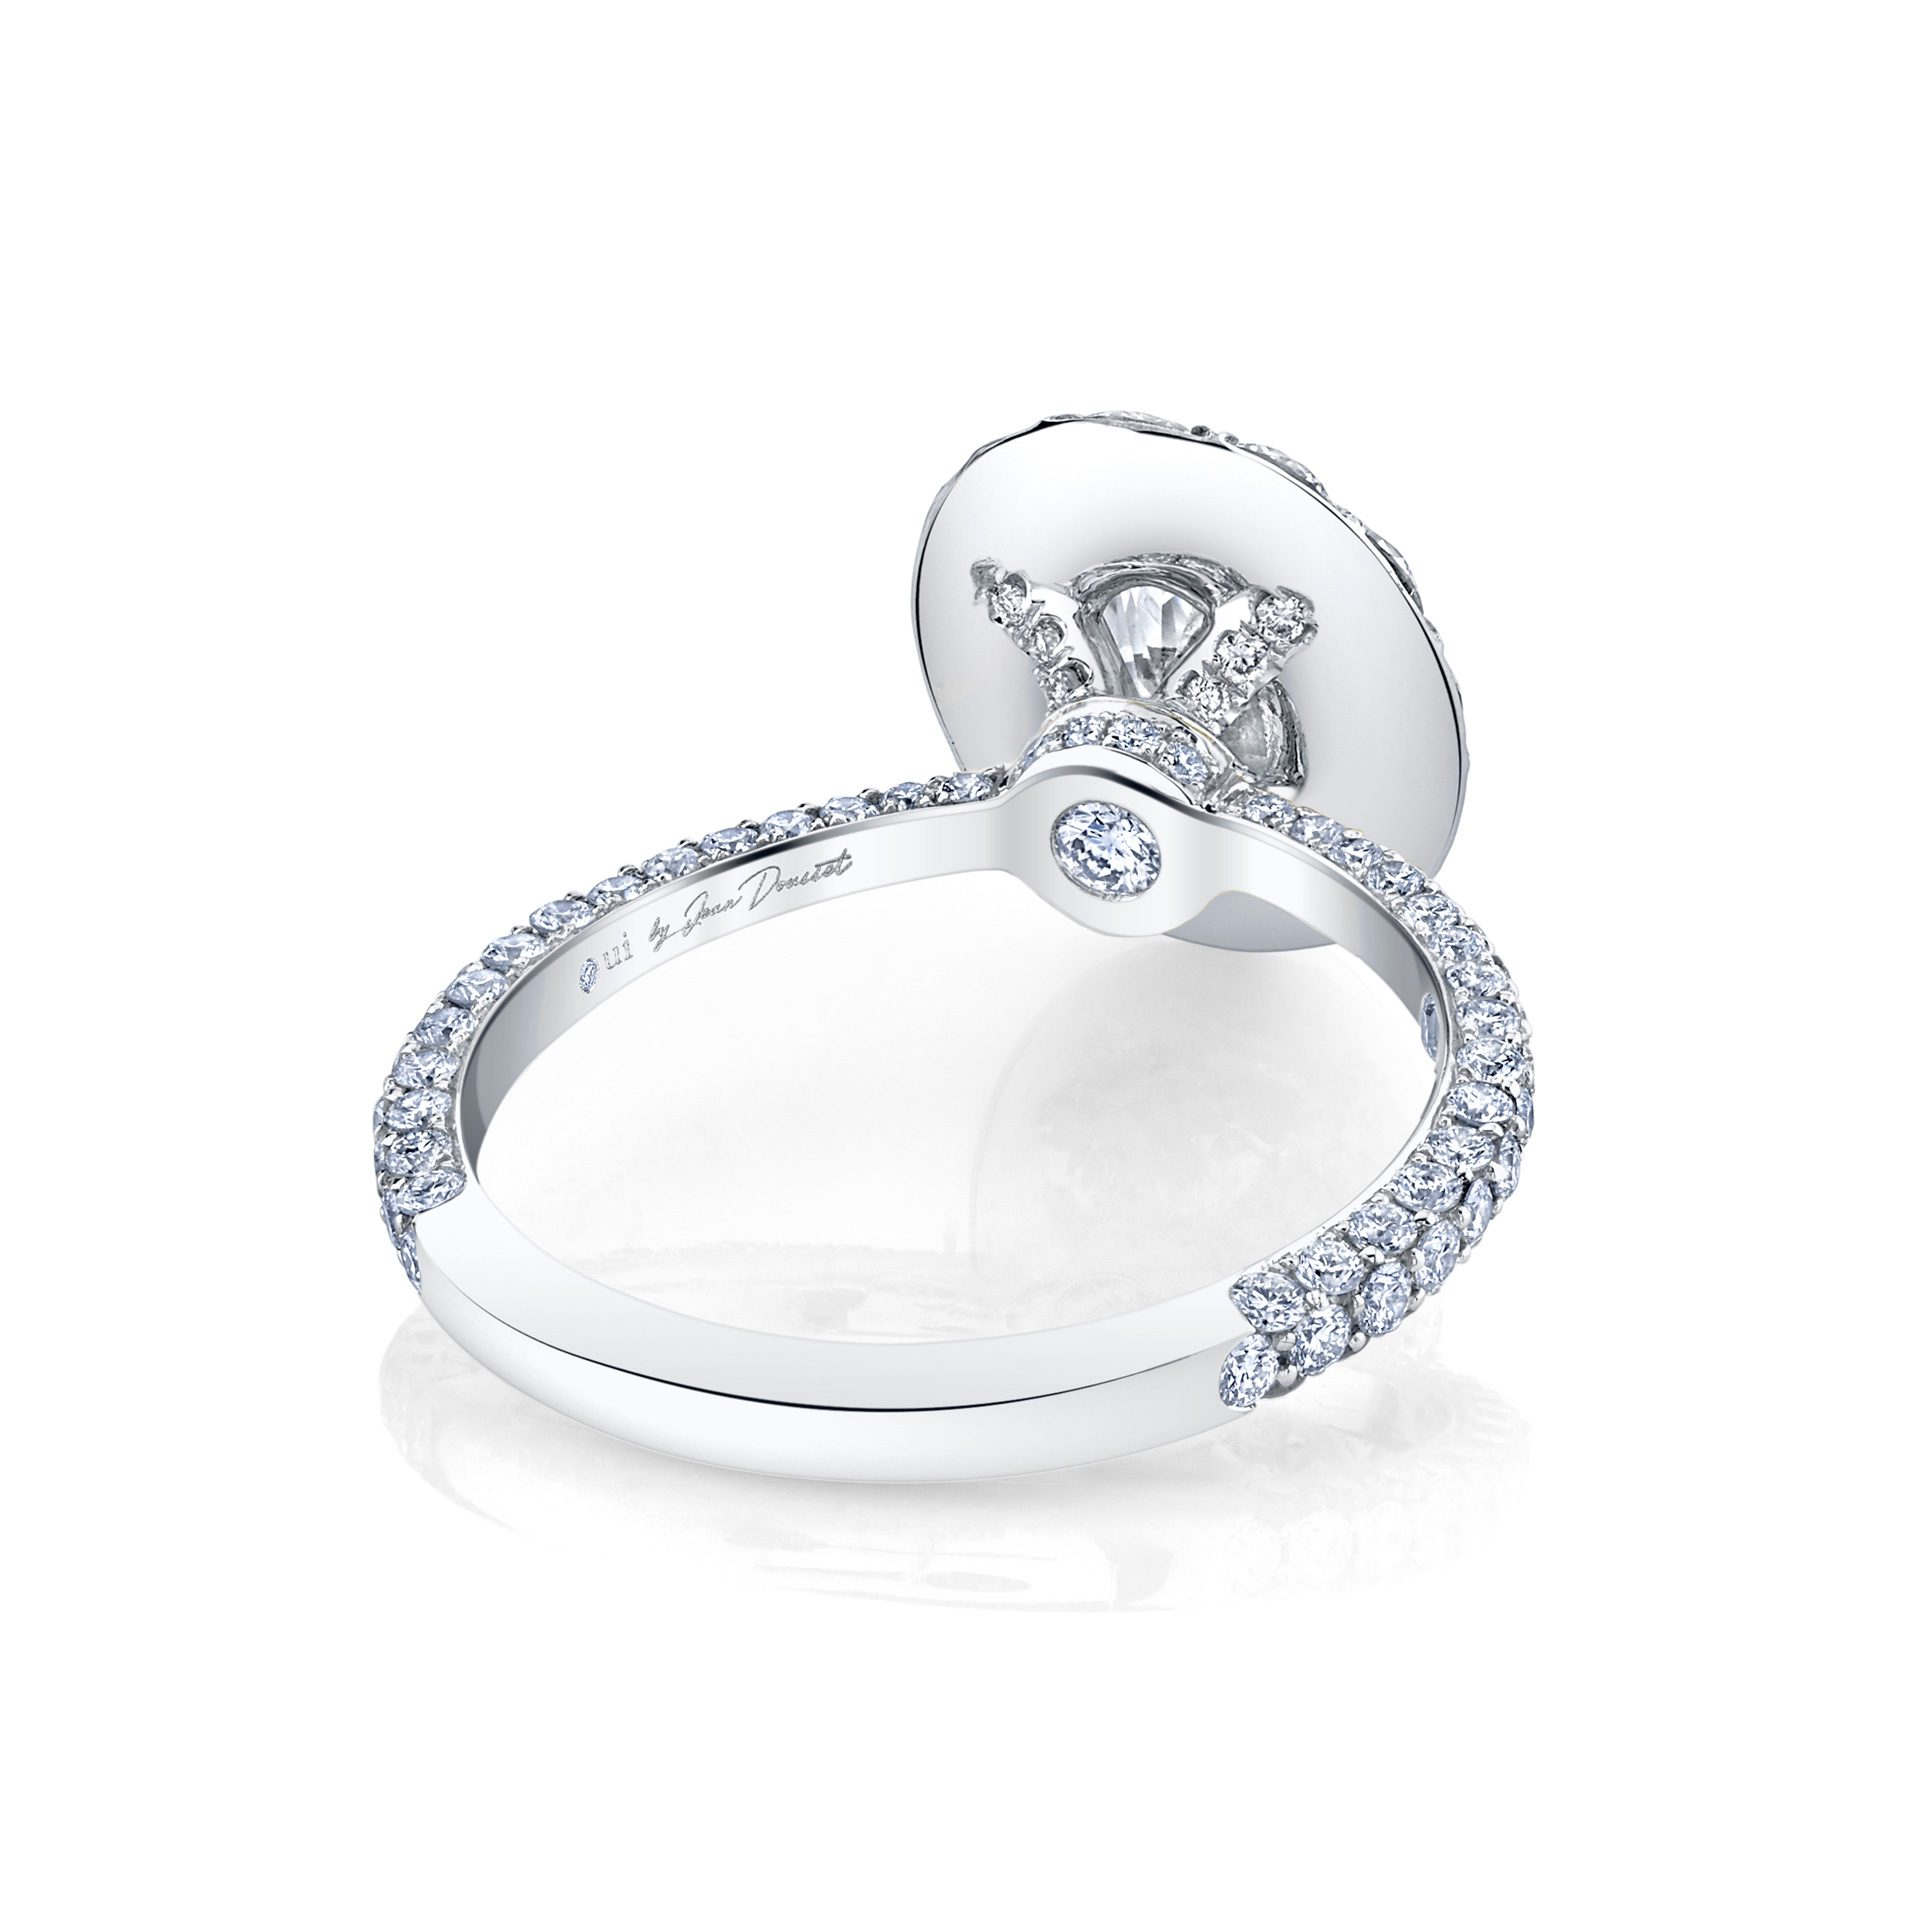 Jacqueline Floating Oval Seamless Solitaire® Engagement Ring with diamond pavé in 18k White Gold Back View by Oui by Jean Dousset